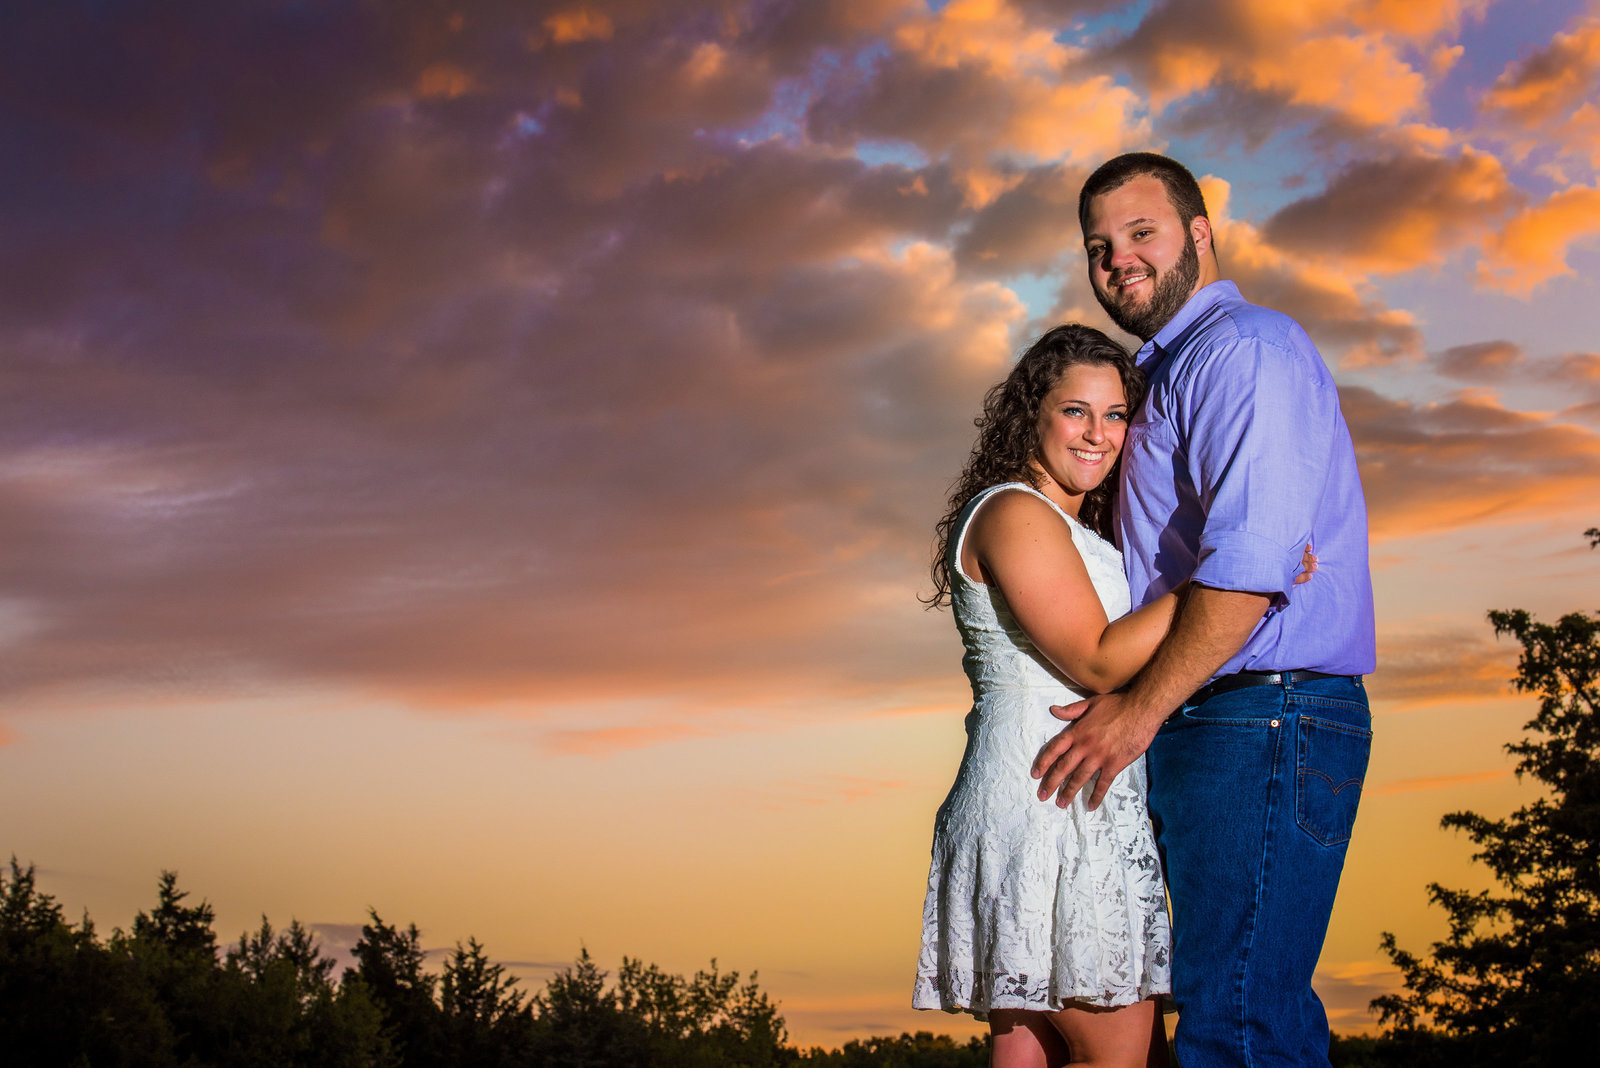 NJ_Rustic_Engagement_Photography175